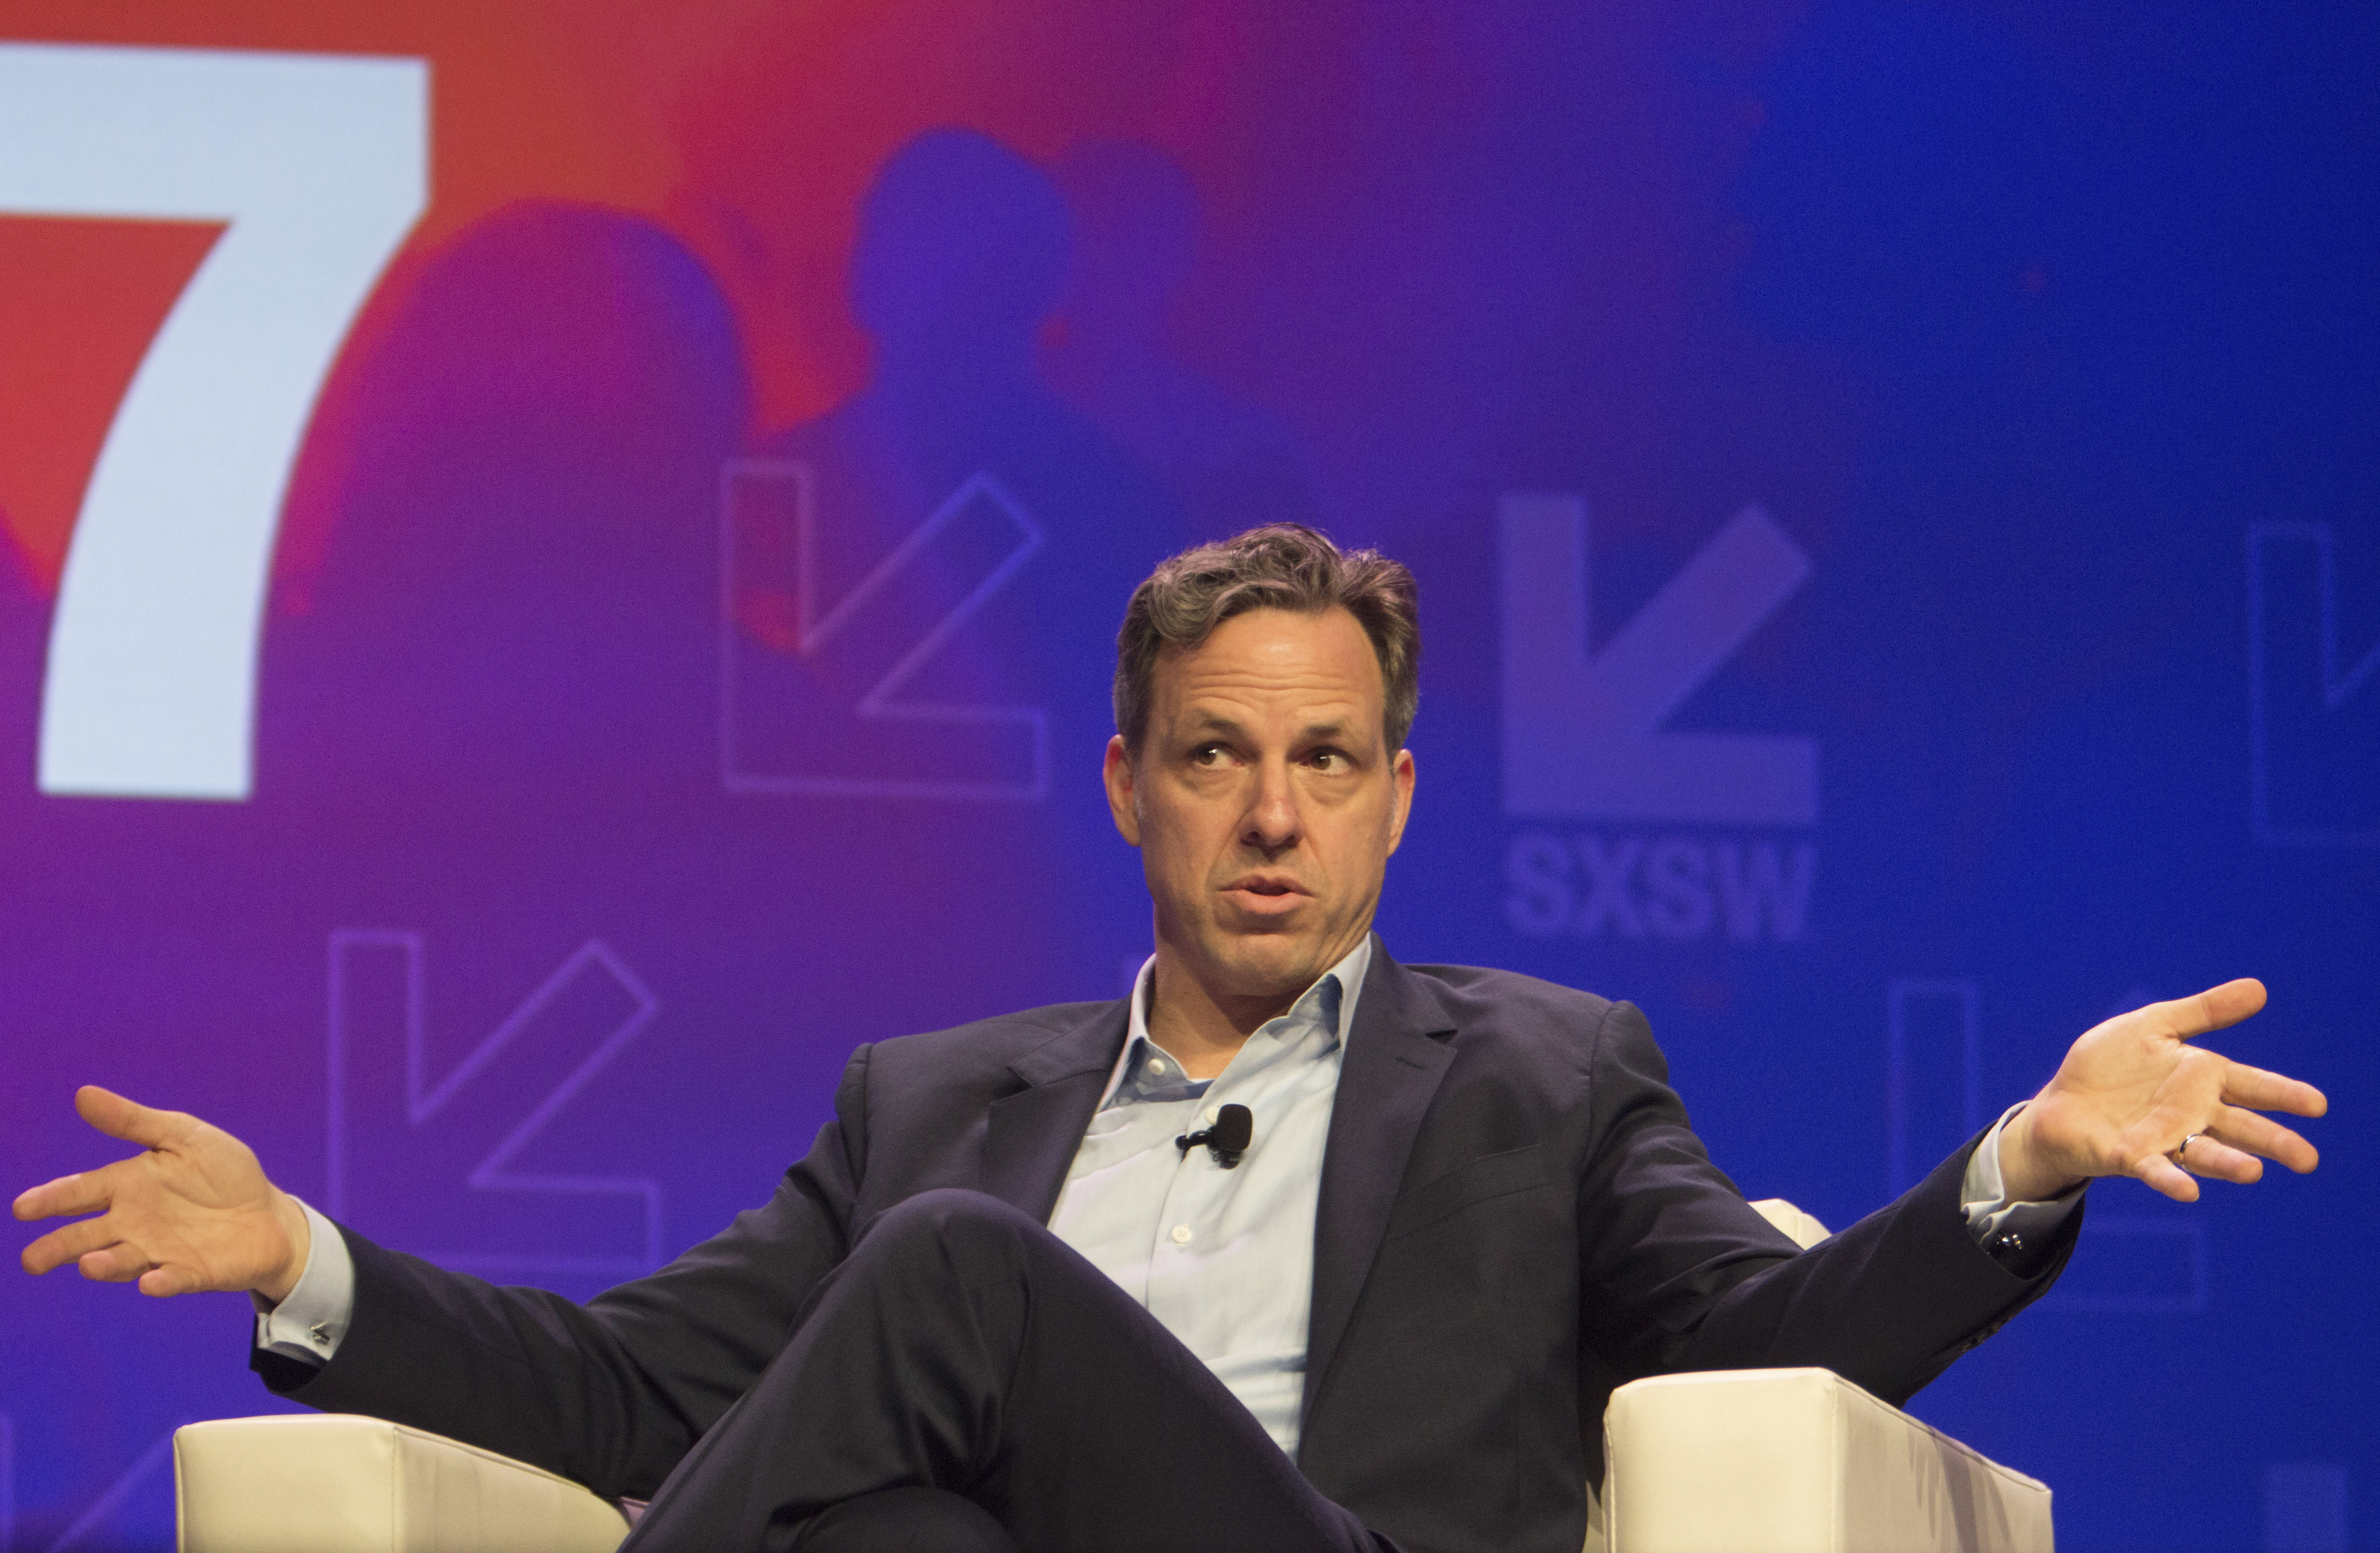 CNN anchor Jake Tapper is the brother of Swig Program director Aaron Hahn Tapper, and will speak at the program's 40th anniversary celebration April 22.